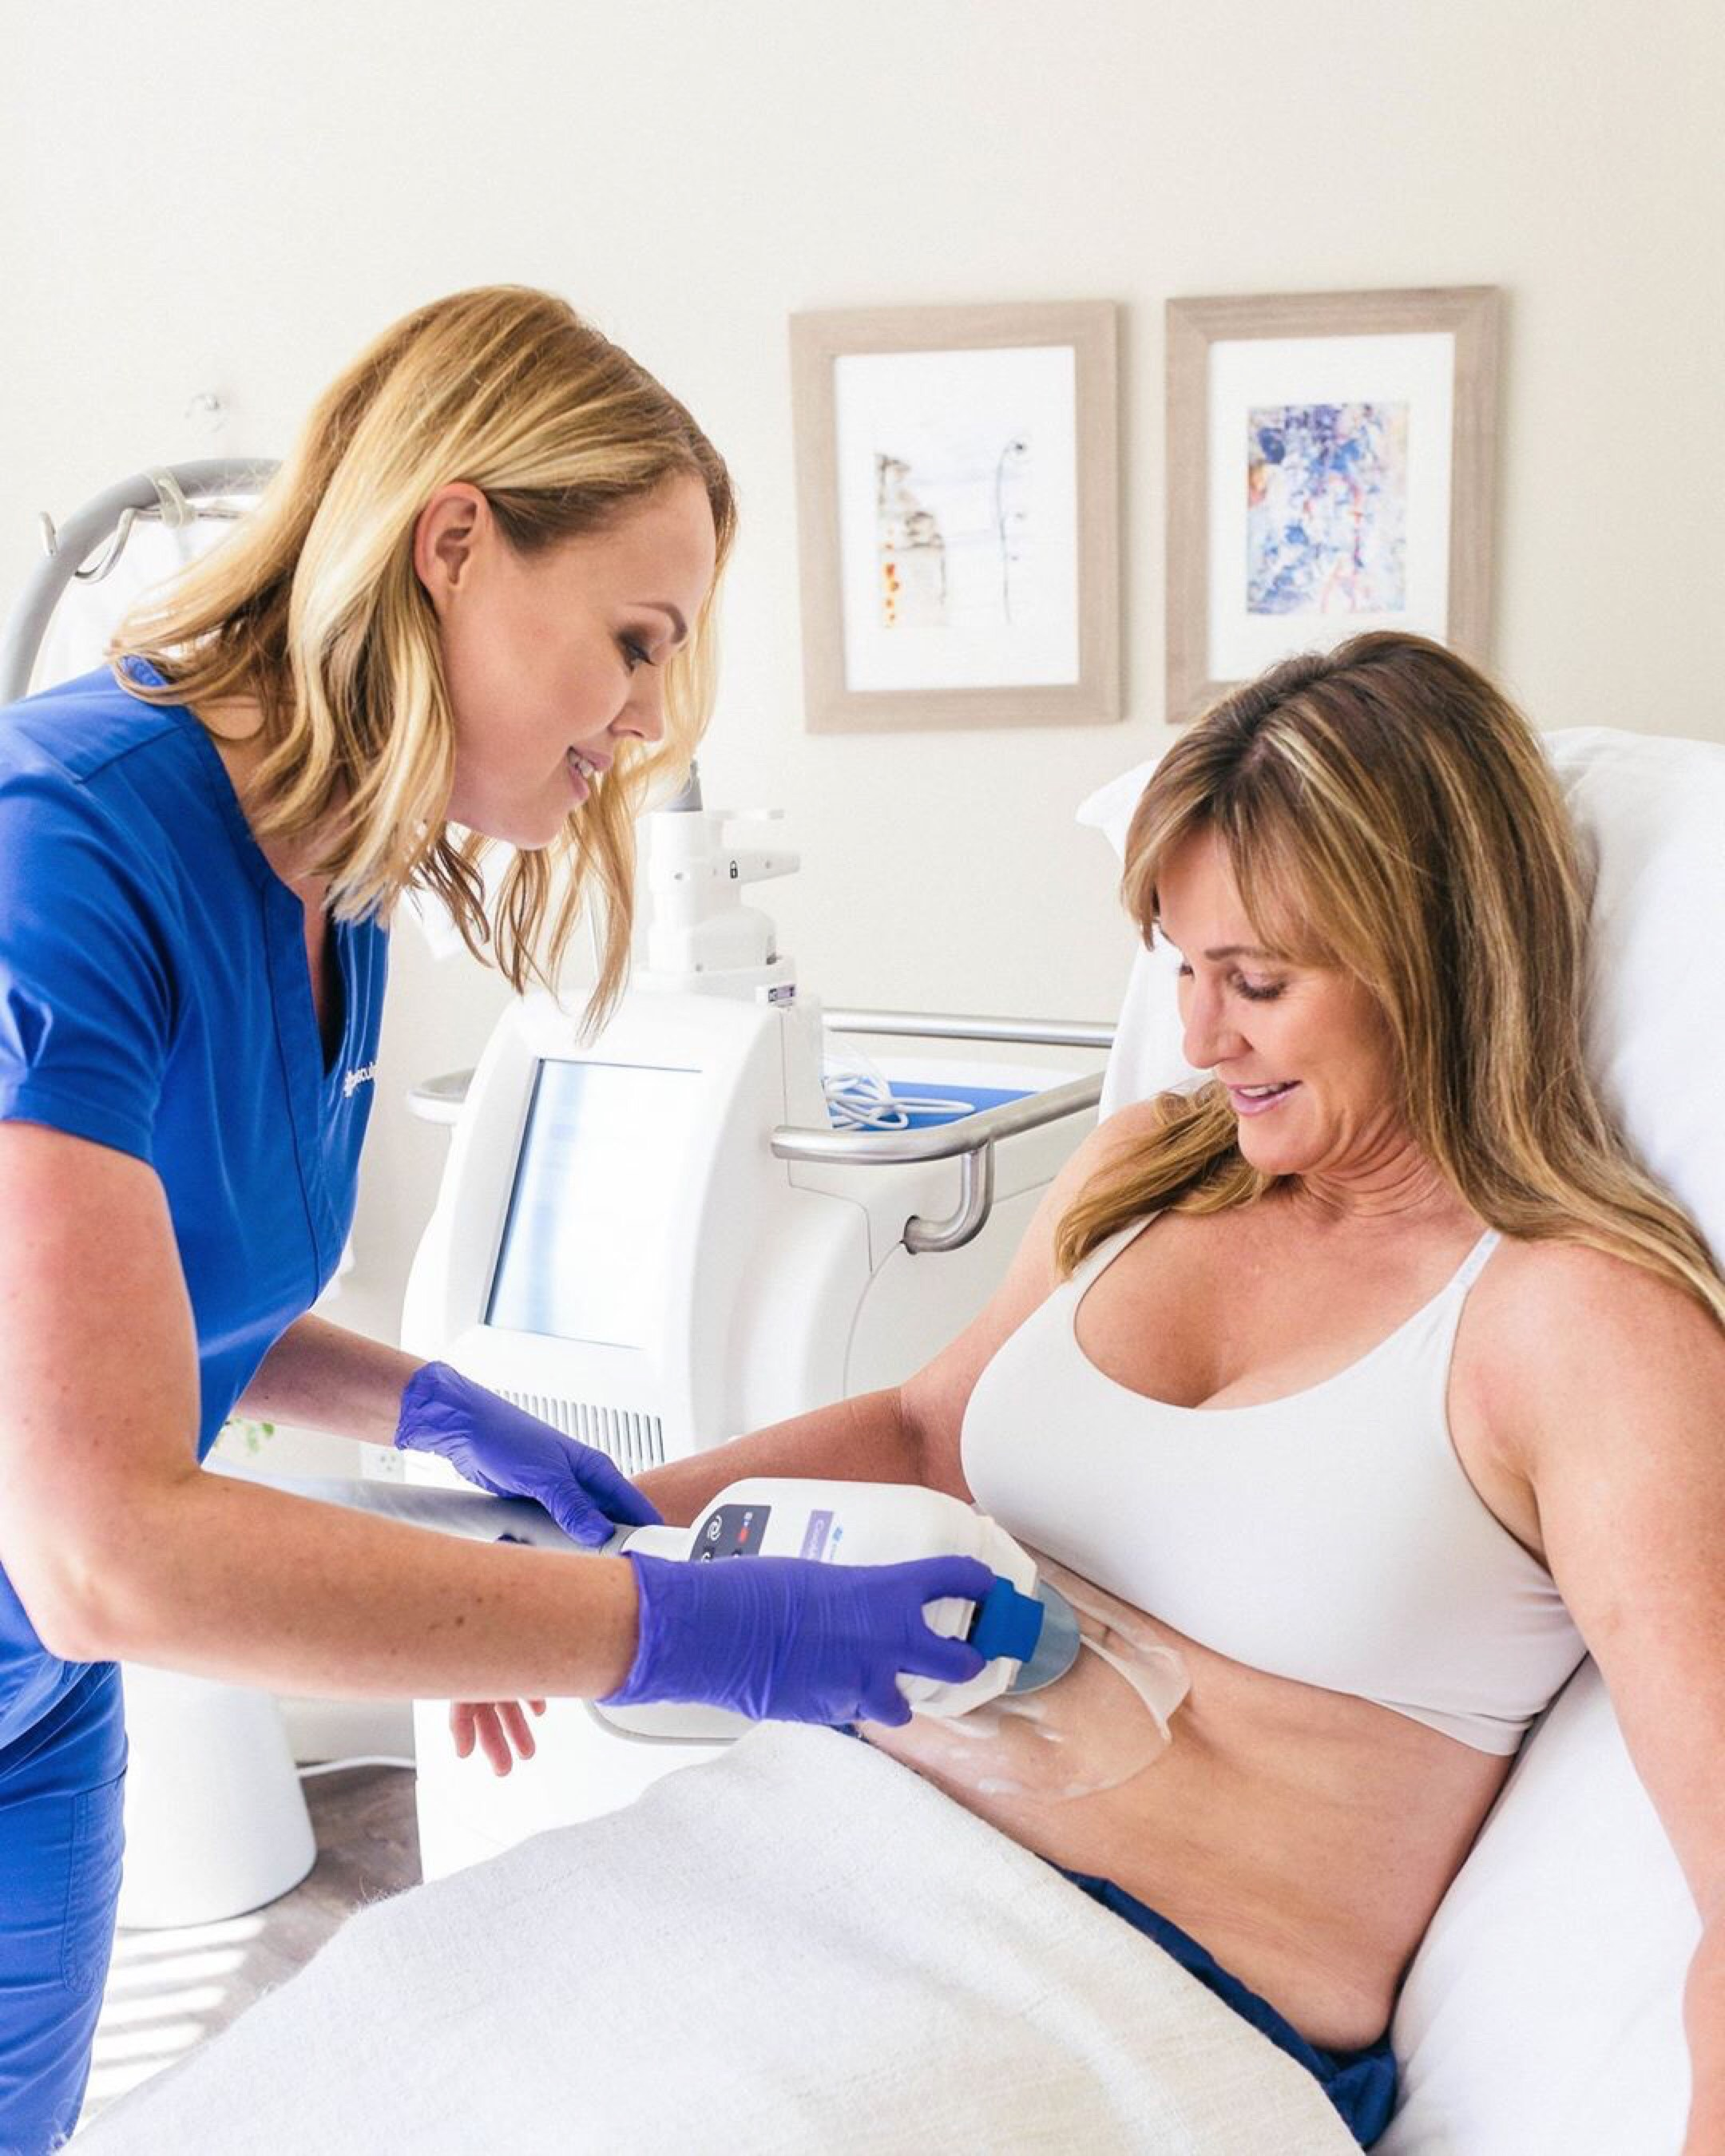 Coolsculpting Cost By Area, and Average Price in San Diego